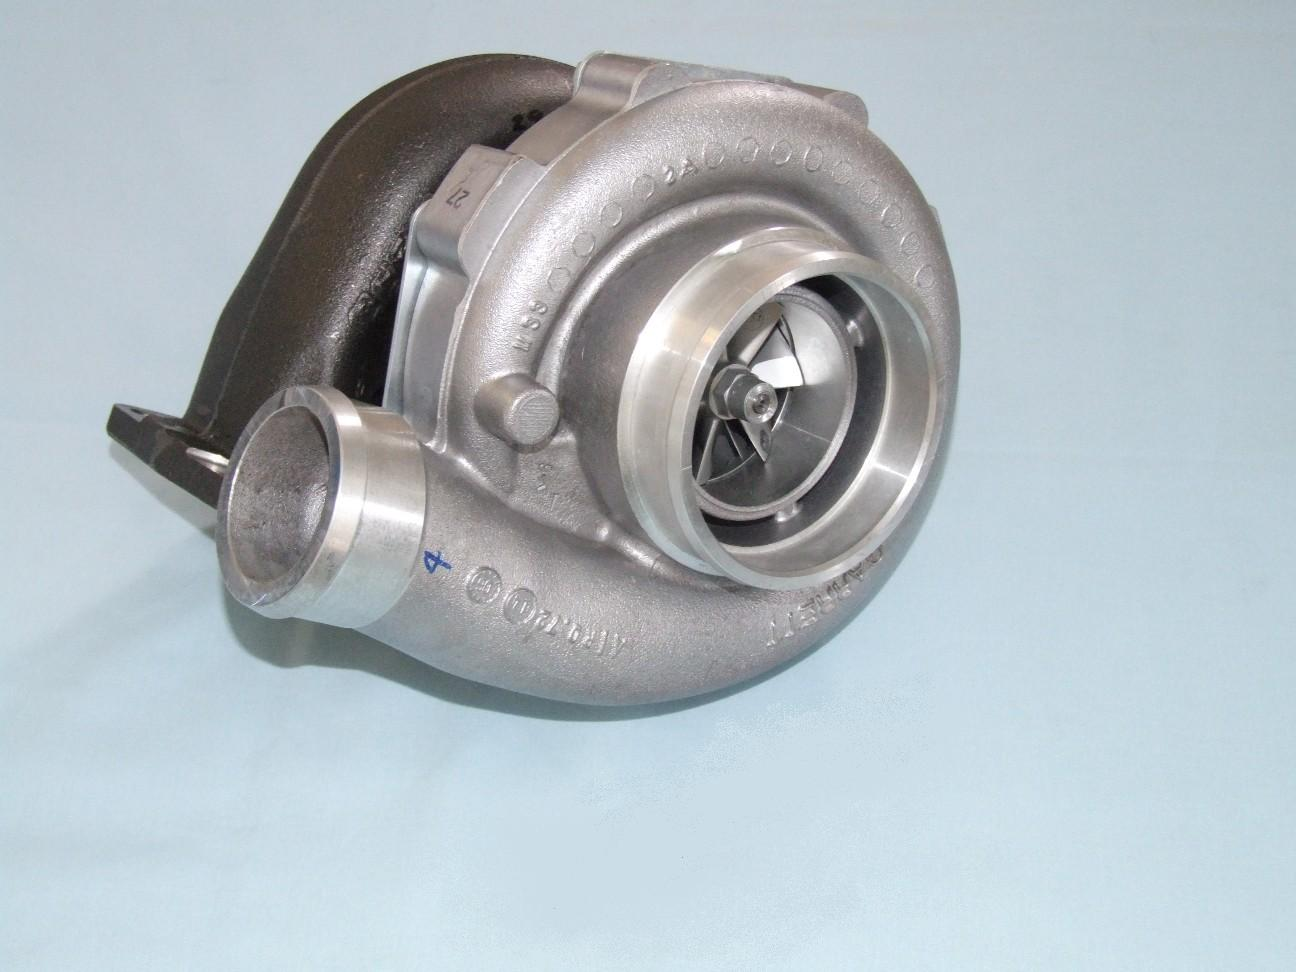 subaru parts VF23 VF34 Vf35 and turbo parts